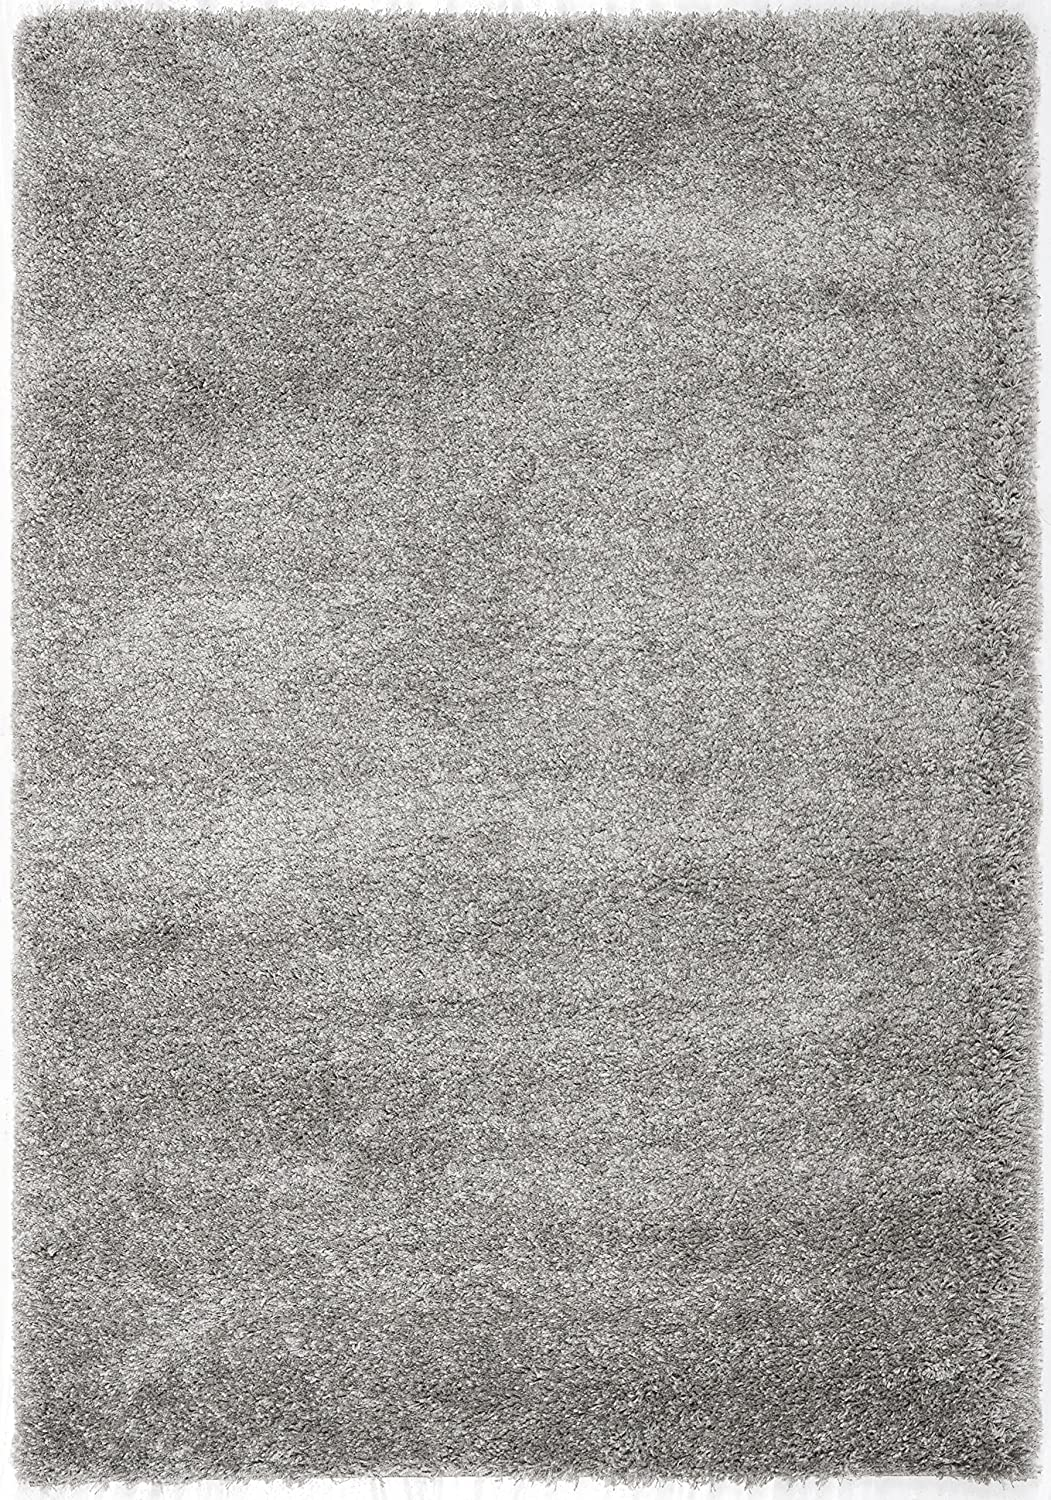 amazoncom safavieh california shag collection 4 x 6 area rug silver home improvement california shag black 4 ft